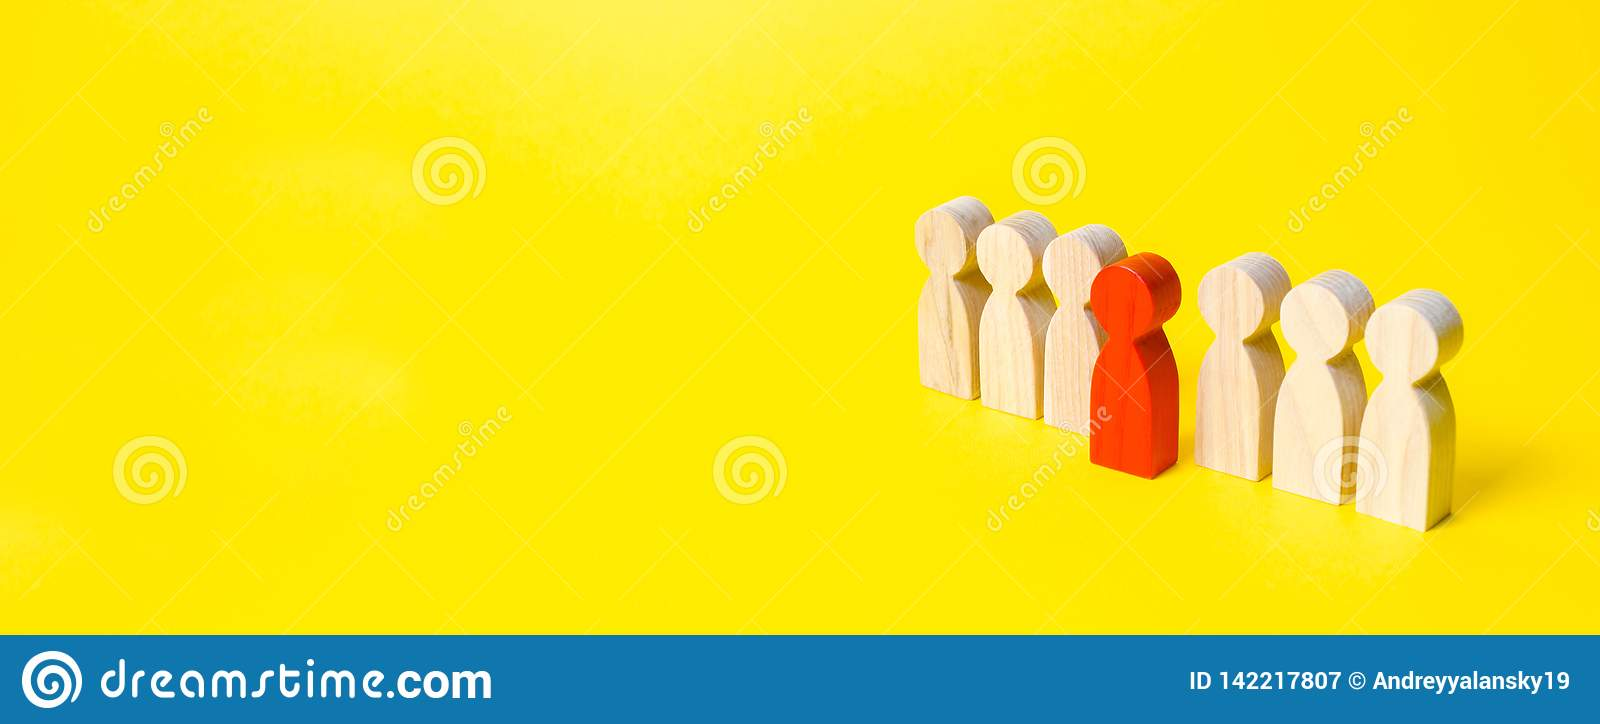 The red figure of a man comes out of a line of people on a yellow background. Leader concept and leadership qualities. Talented